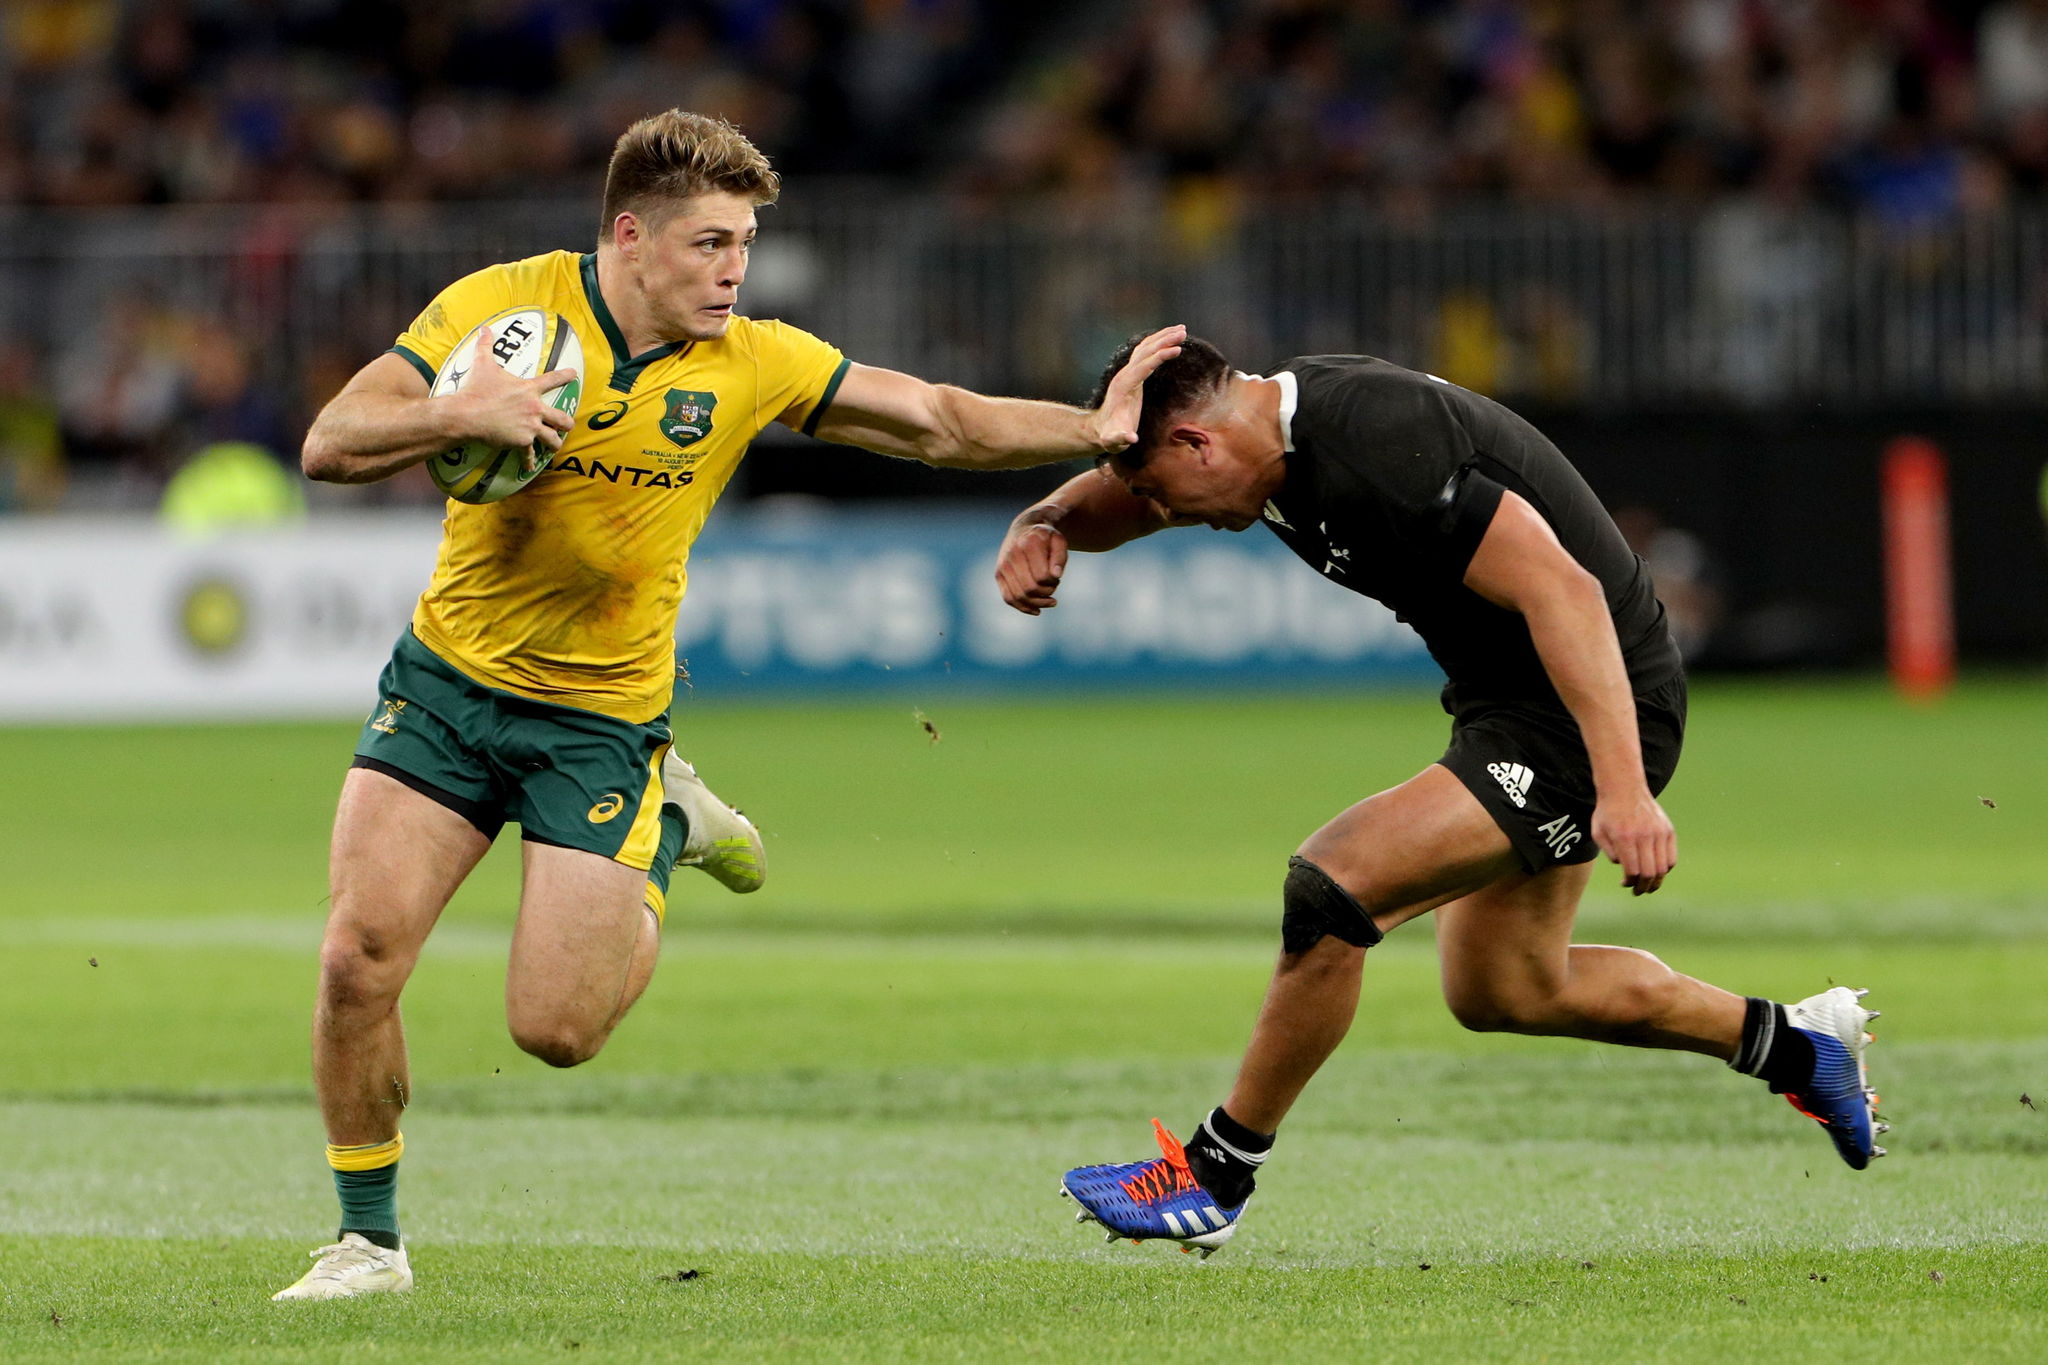 Perth (Australia).- James O'Connor of the Wallabies oushes off Anton Lienert-Brown of the <HIT>All</HIT> <HIT>Blacks</HIT> during the Bledisloe Cup match between between the Australian Wallabies and the New Zealand <HIT>All</HIT> <HIT>Blacks</HIT> at Optus Stadium in Perth, Australia, August 10, 2019. (Nueva Zelanda) EPA/ AUSTRALIA AND NEW ZEALAND OUT